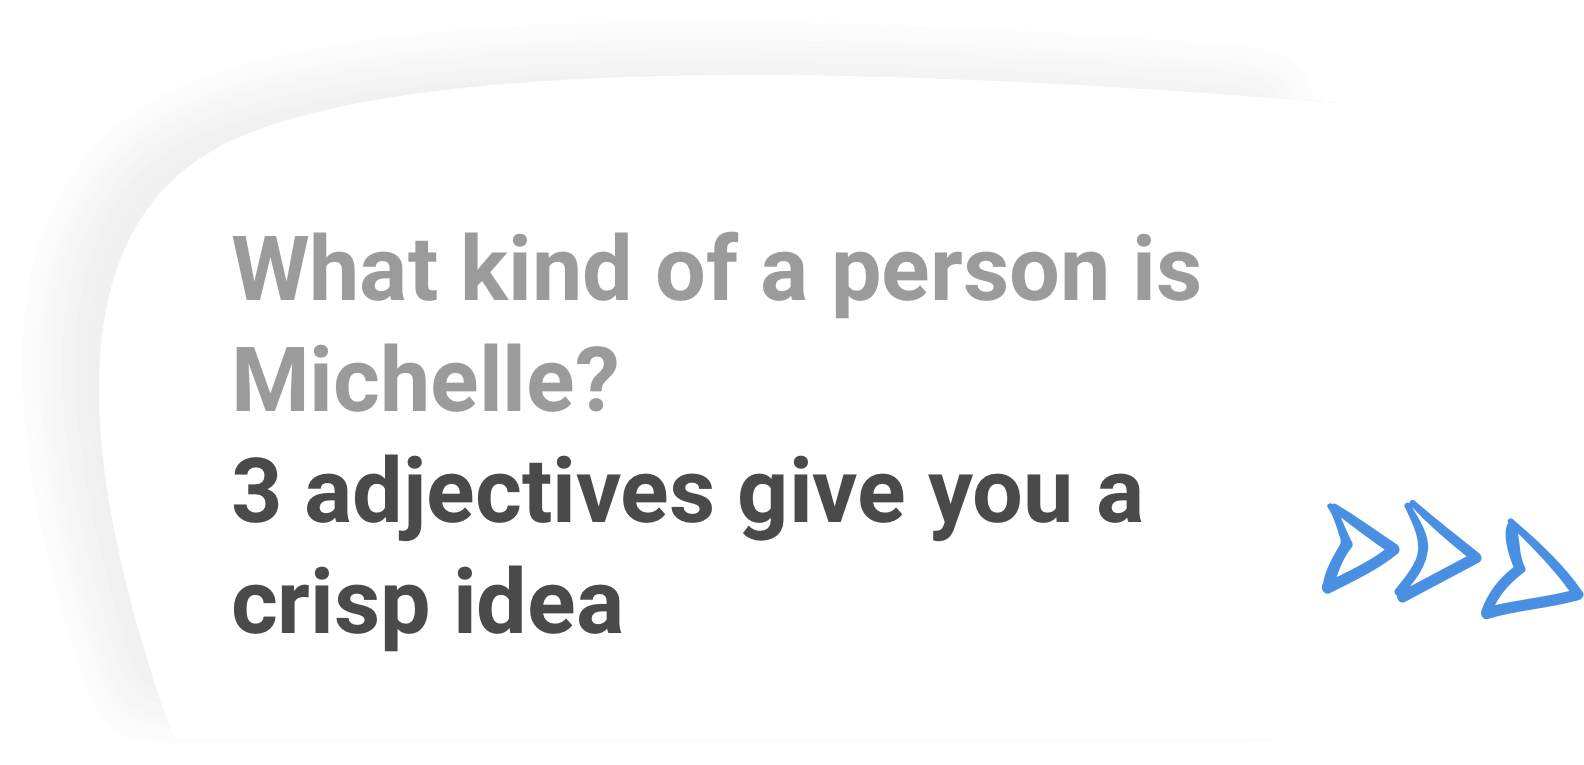 What kind of a person is Michelle? 3 adjectives give you a crisp idea